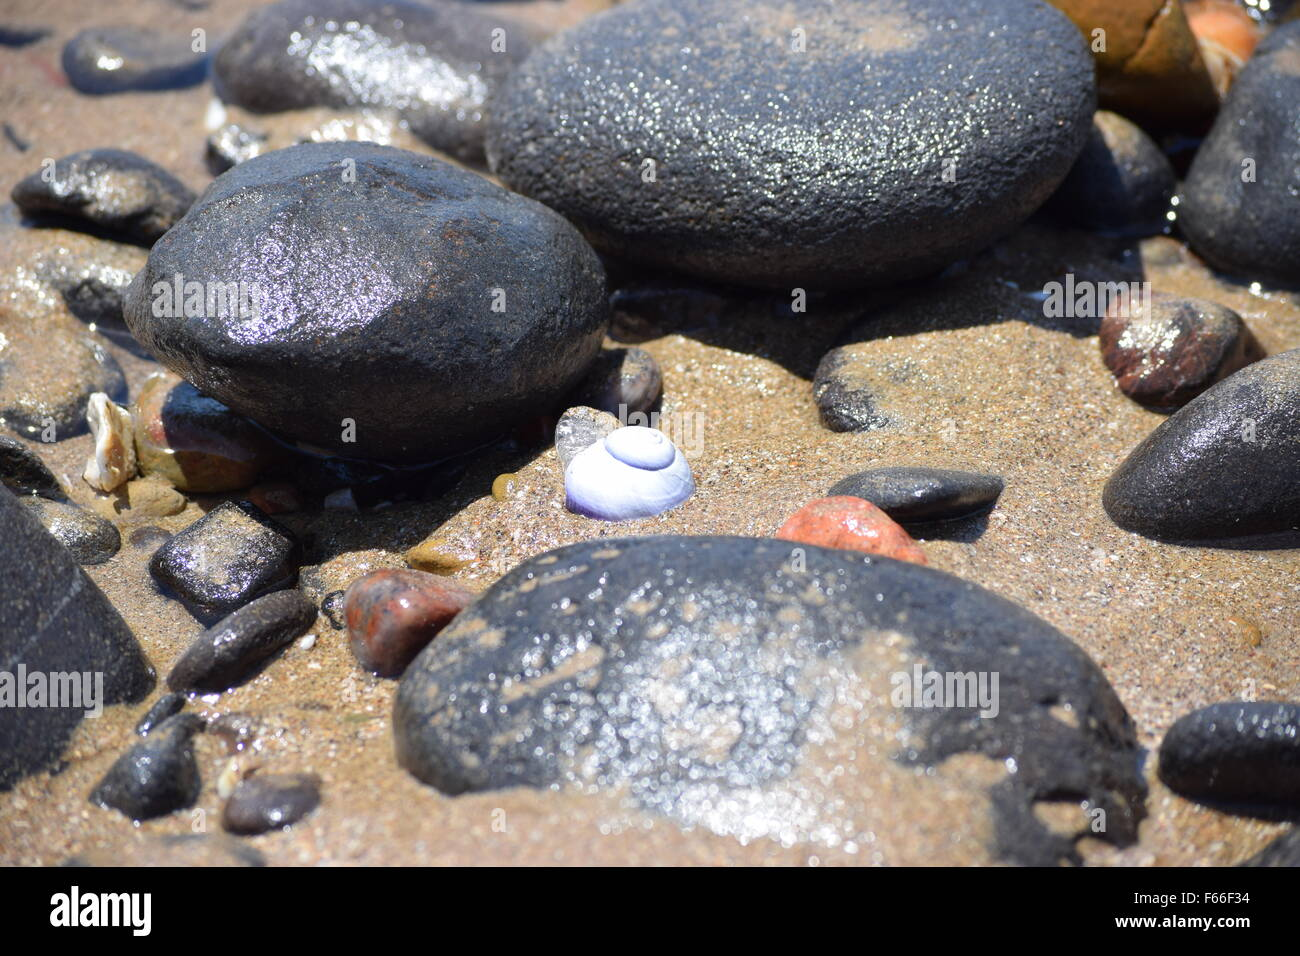 pebbles and rocks on the east coast of Australia, as the tide is going out, sea snail in the centre of the photo - Stock Image